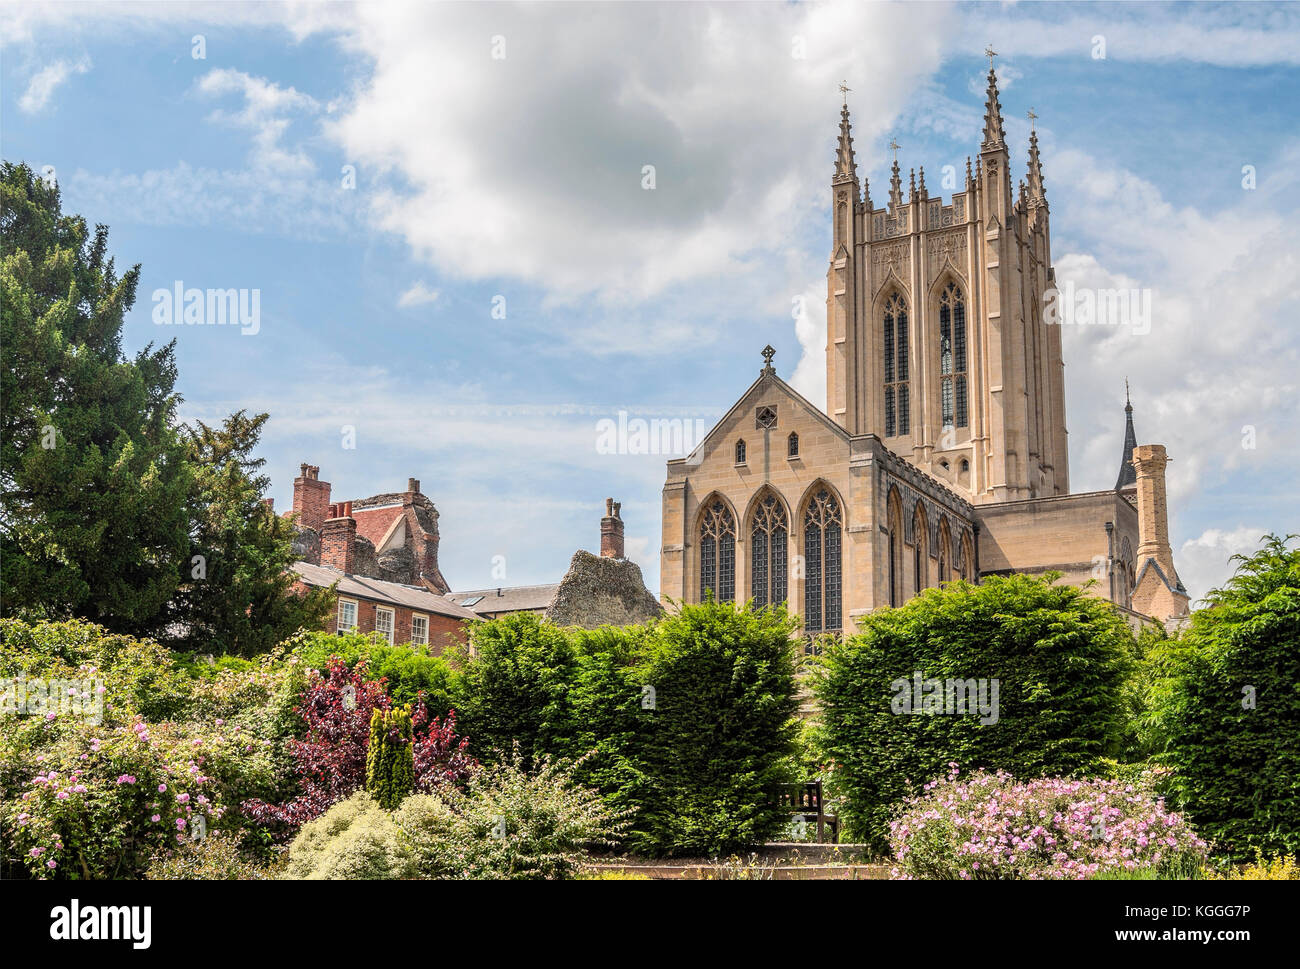 St. Edmundsbury Cathedral churchyard, the cathedral for the Church of England's Diocese of St Edmundsbury and - Stock Image